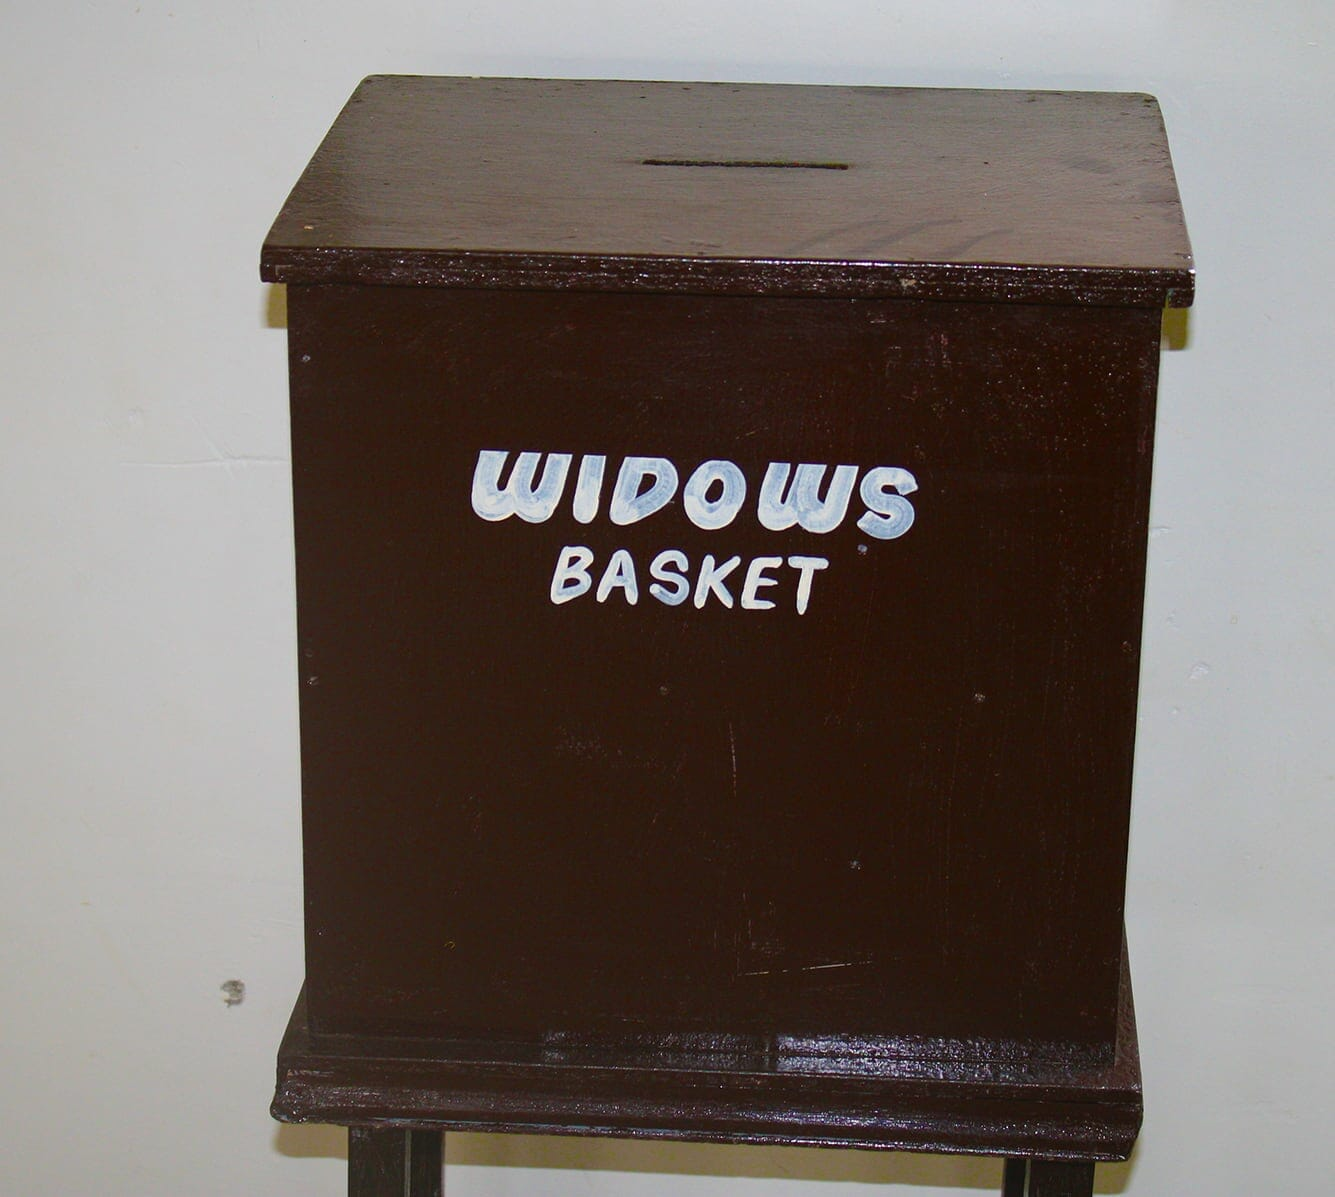 Offering box for widows at church